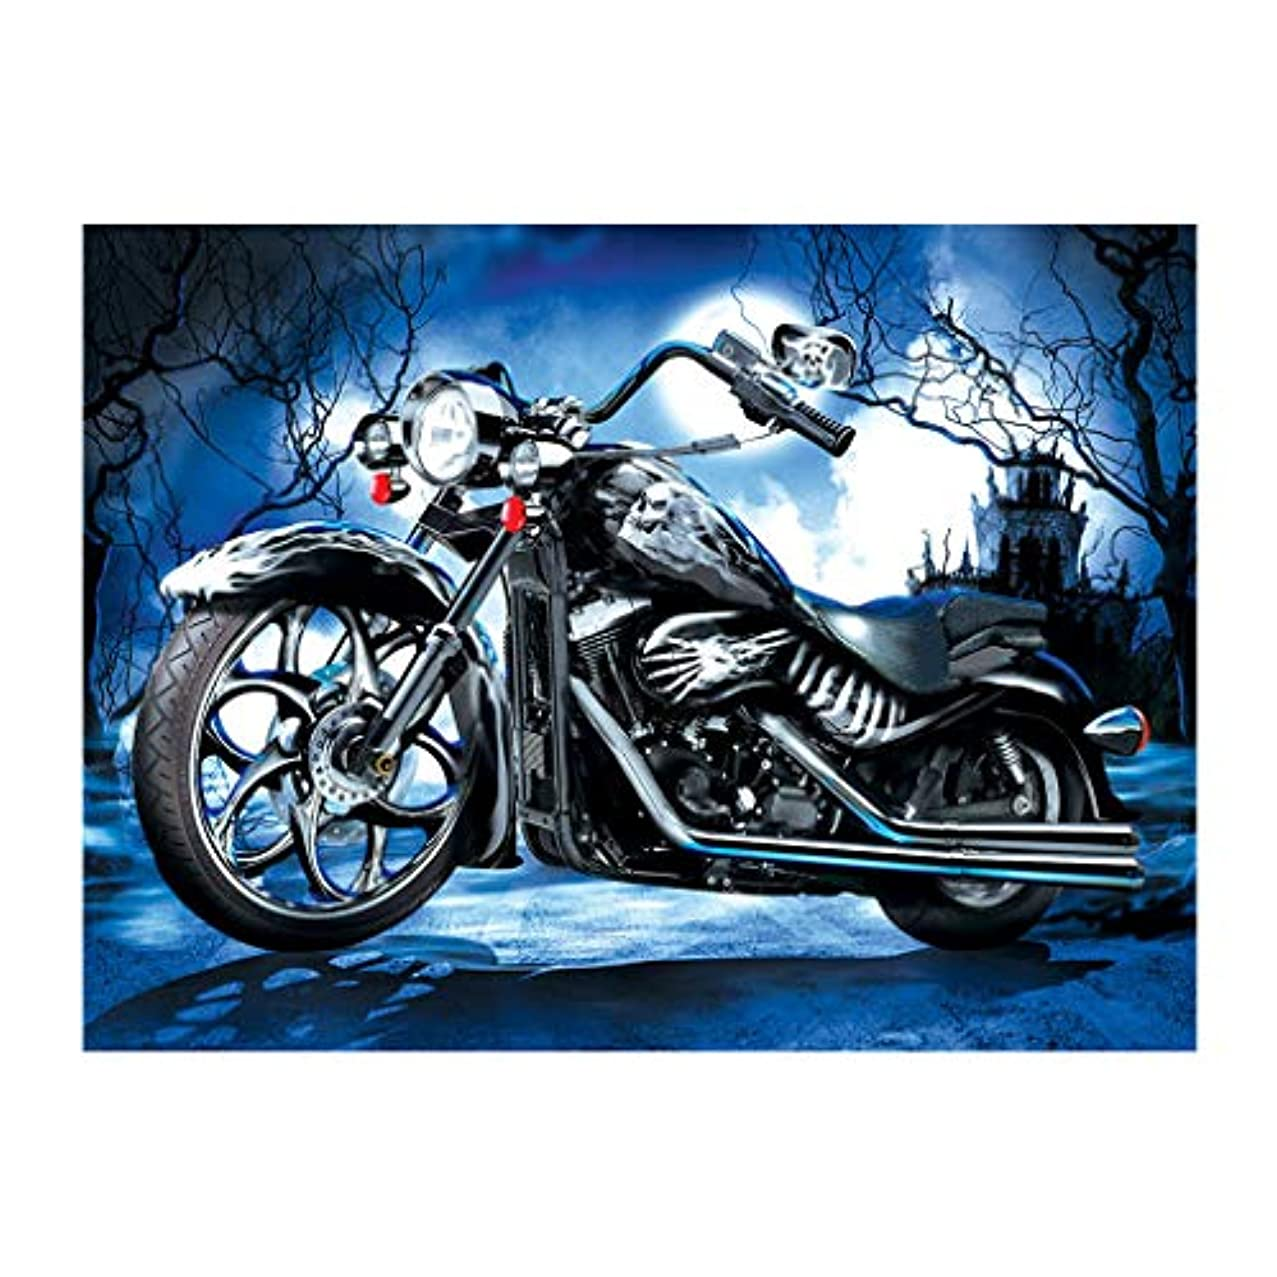 DCIDBEI Diamond Painting 5D,Diamond Embroidery Cross Stitch Motorcycle, Diamond Paintings Rhinestone Embroidery Cross Stitch Kits Supply Arts Craft Canvas Wall Decor Stickers Home Decor 16x12 inches